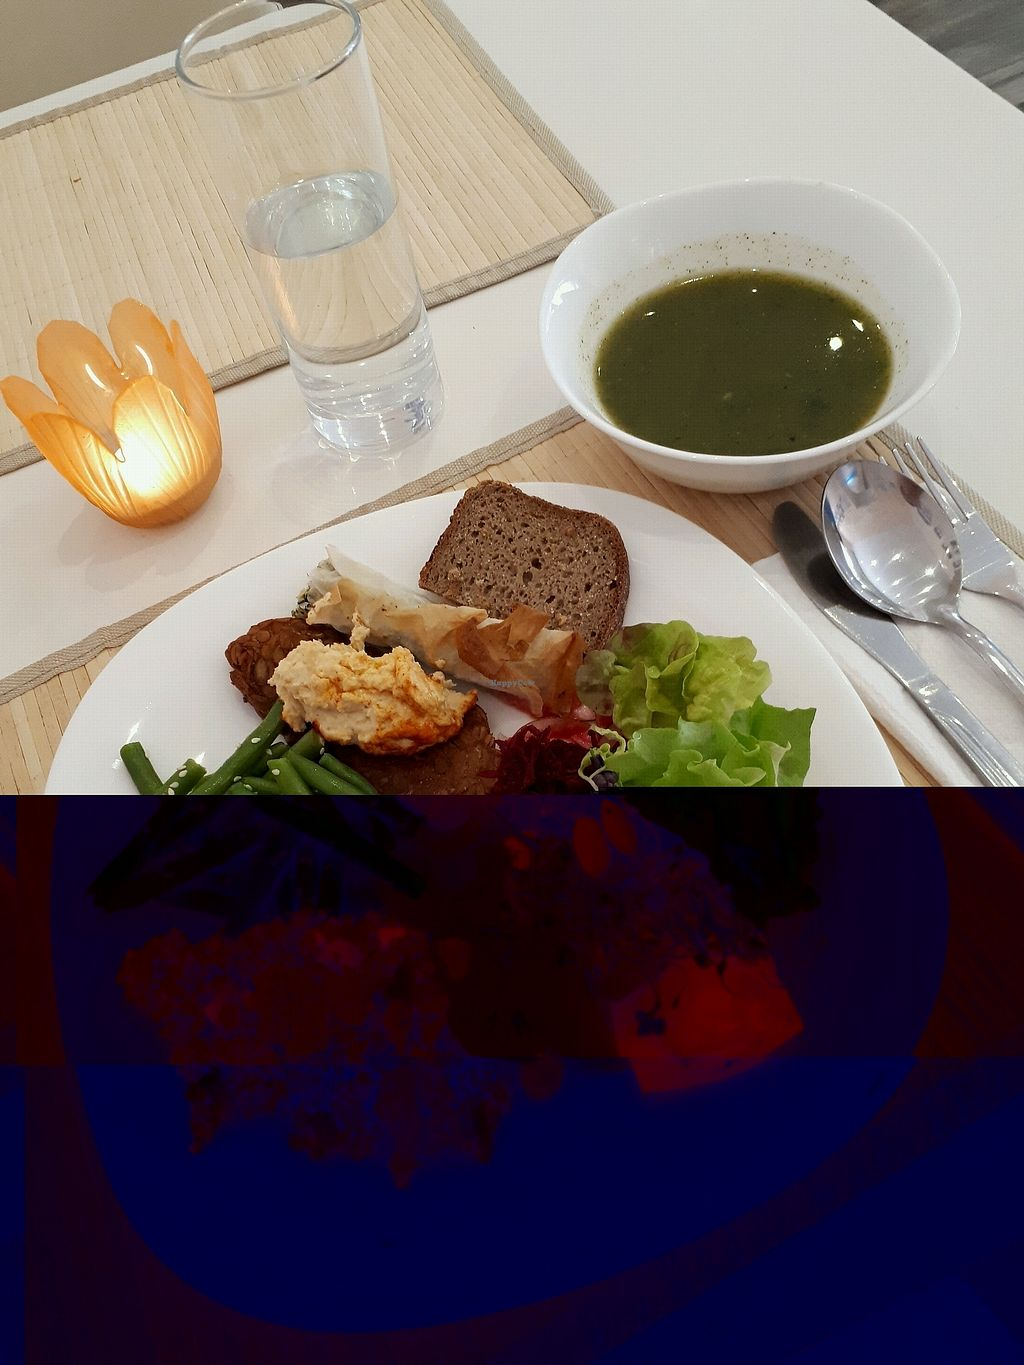 """Photo of Kring  by <a href=""""/members/profile/reich"""">reich</a> <br/>my lunch :) <br/> December 17, 2017  - <a href='/contact/abuse/image/18330/336541'>Report</a>"""